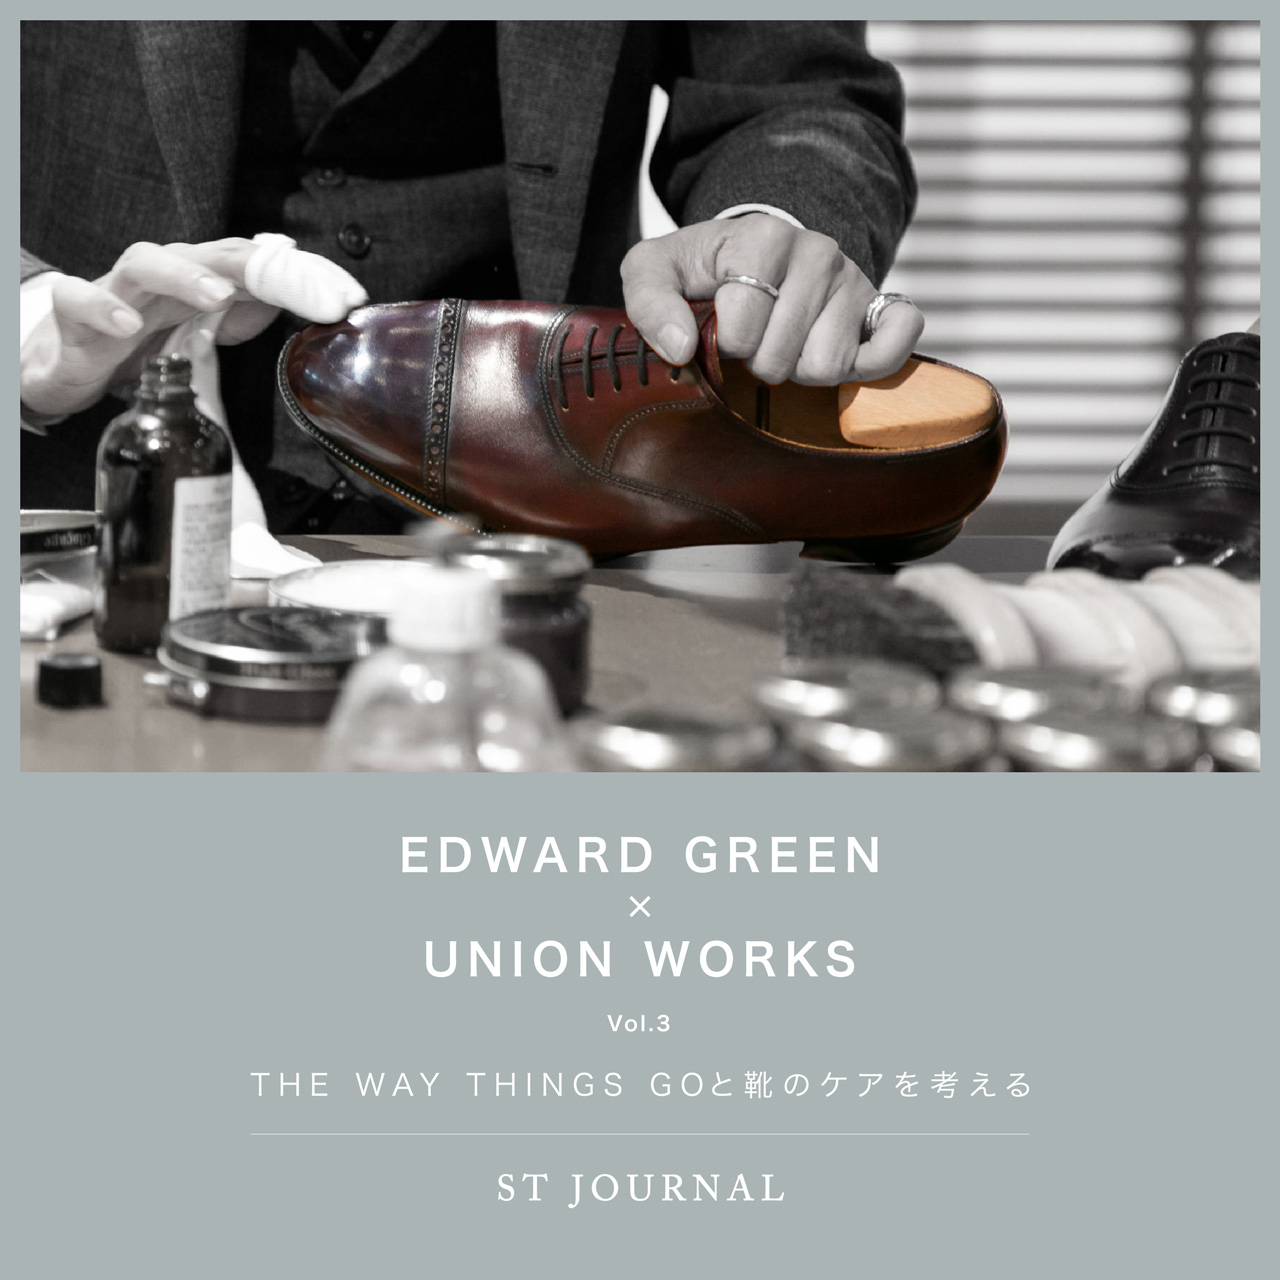 EDWARD GREEN x UNION WORKS Vol. 3 THE WAY THINGS GOと靴のケアを考える